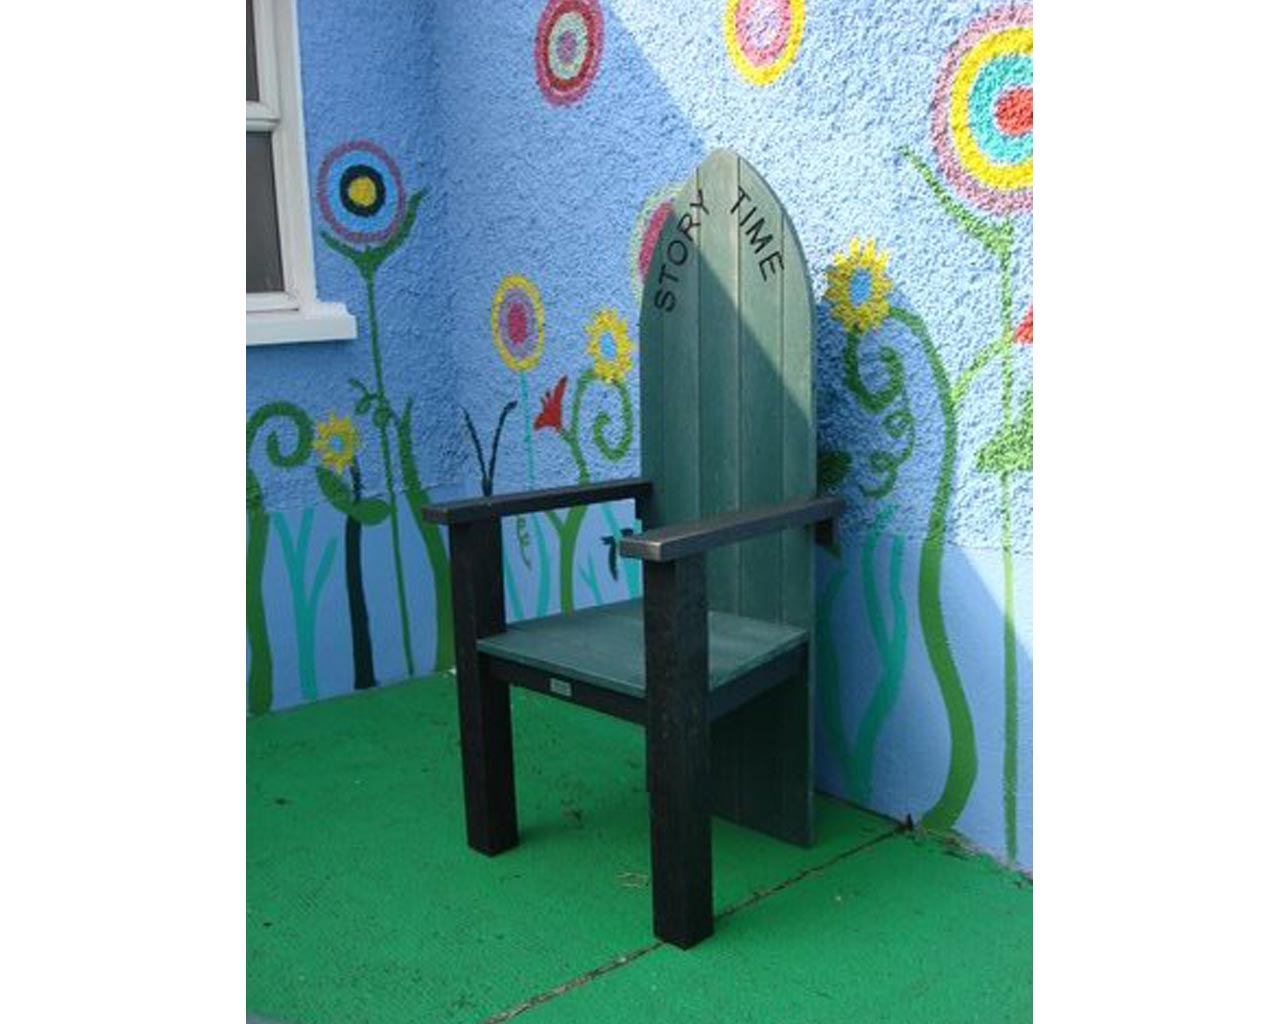 Storytime Chair Storytime Chair Murray S Recycled Plastic